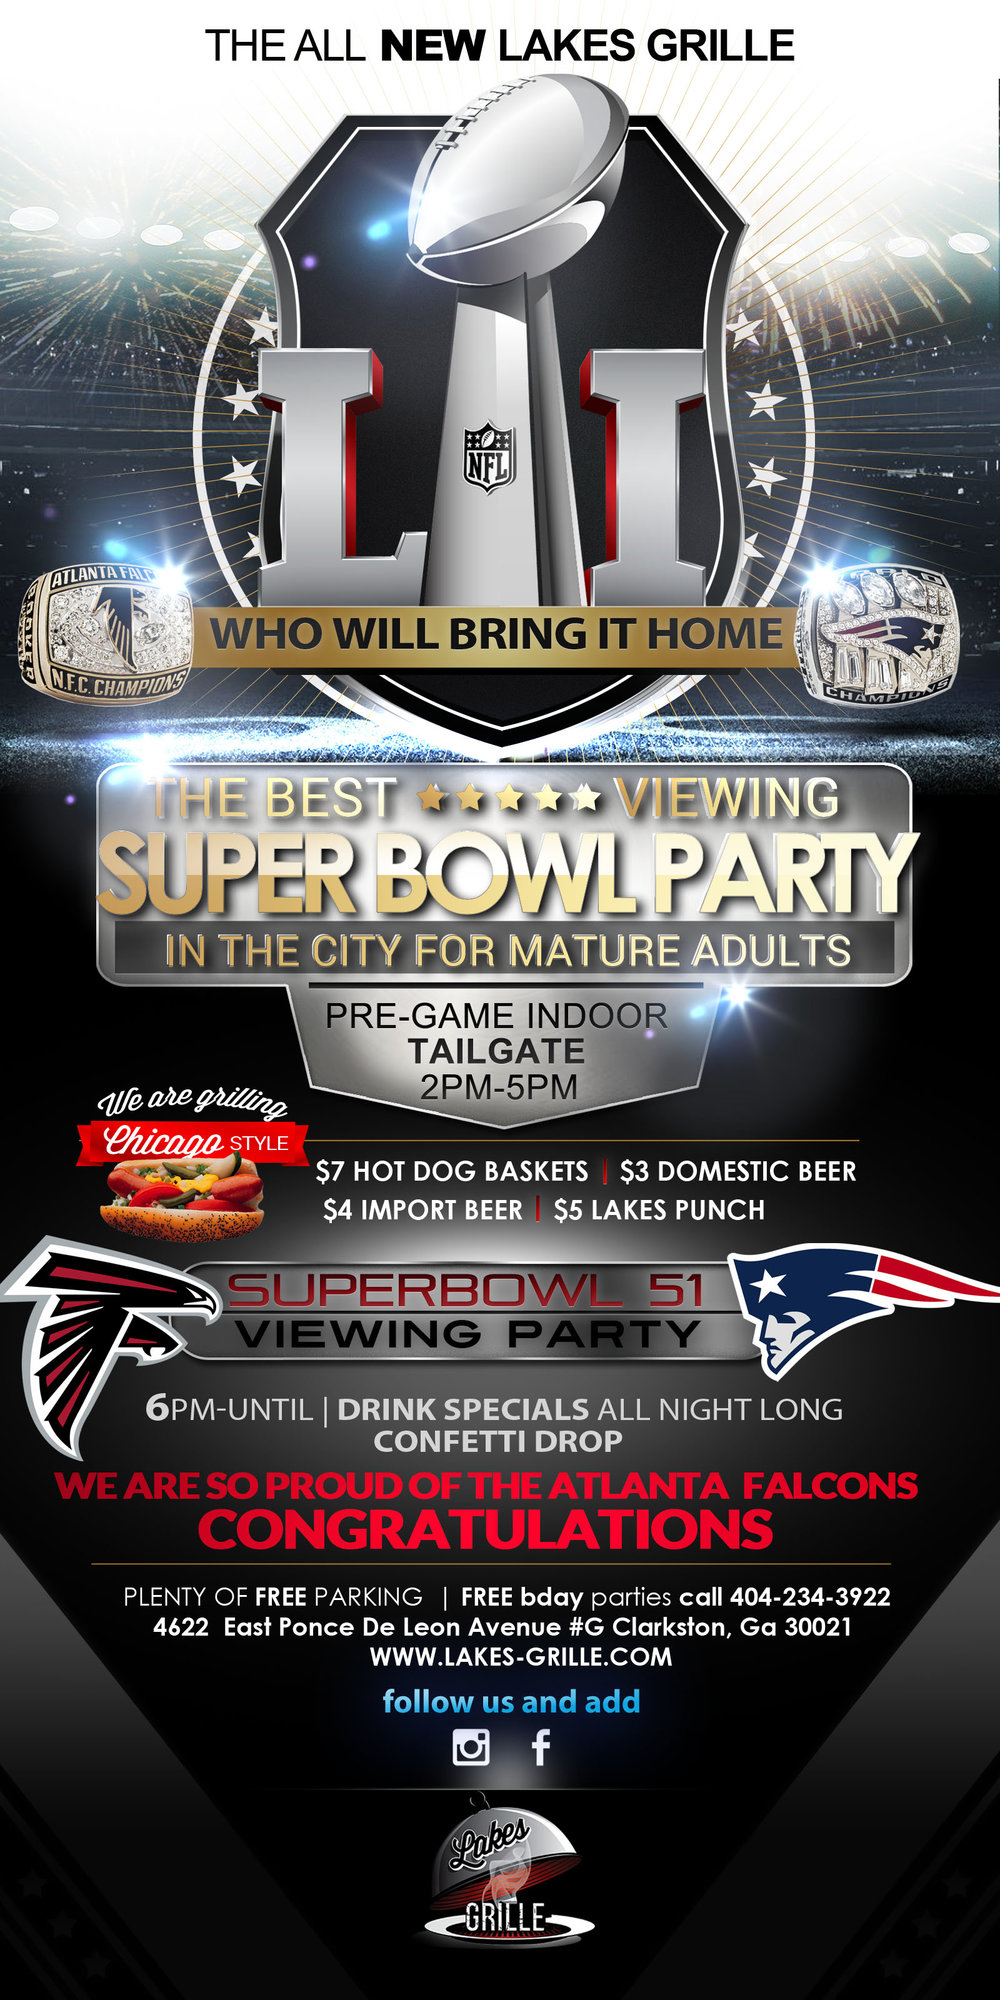 Superbowl flyer-lakes grille.jpg